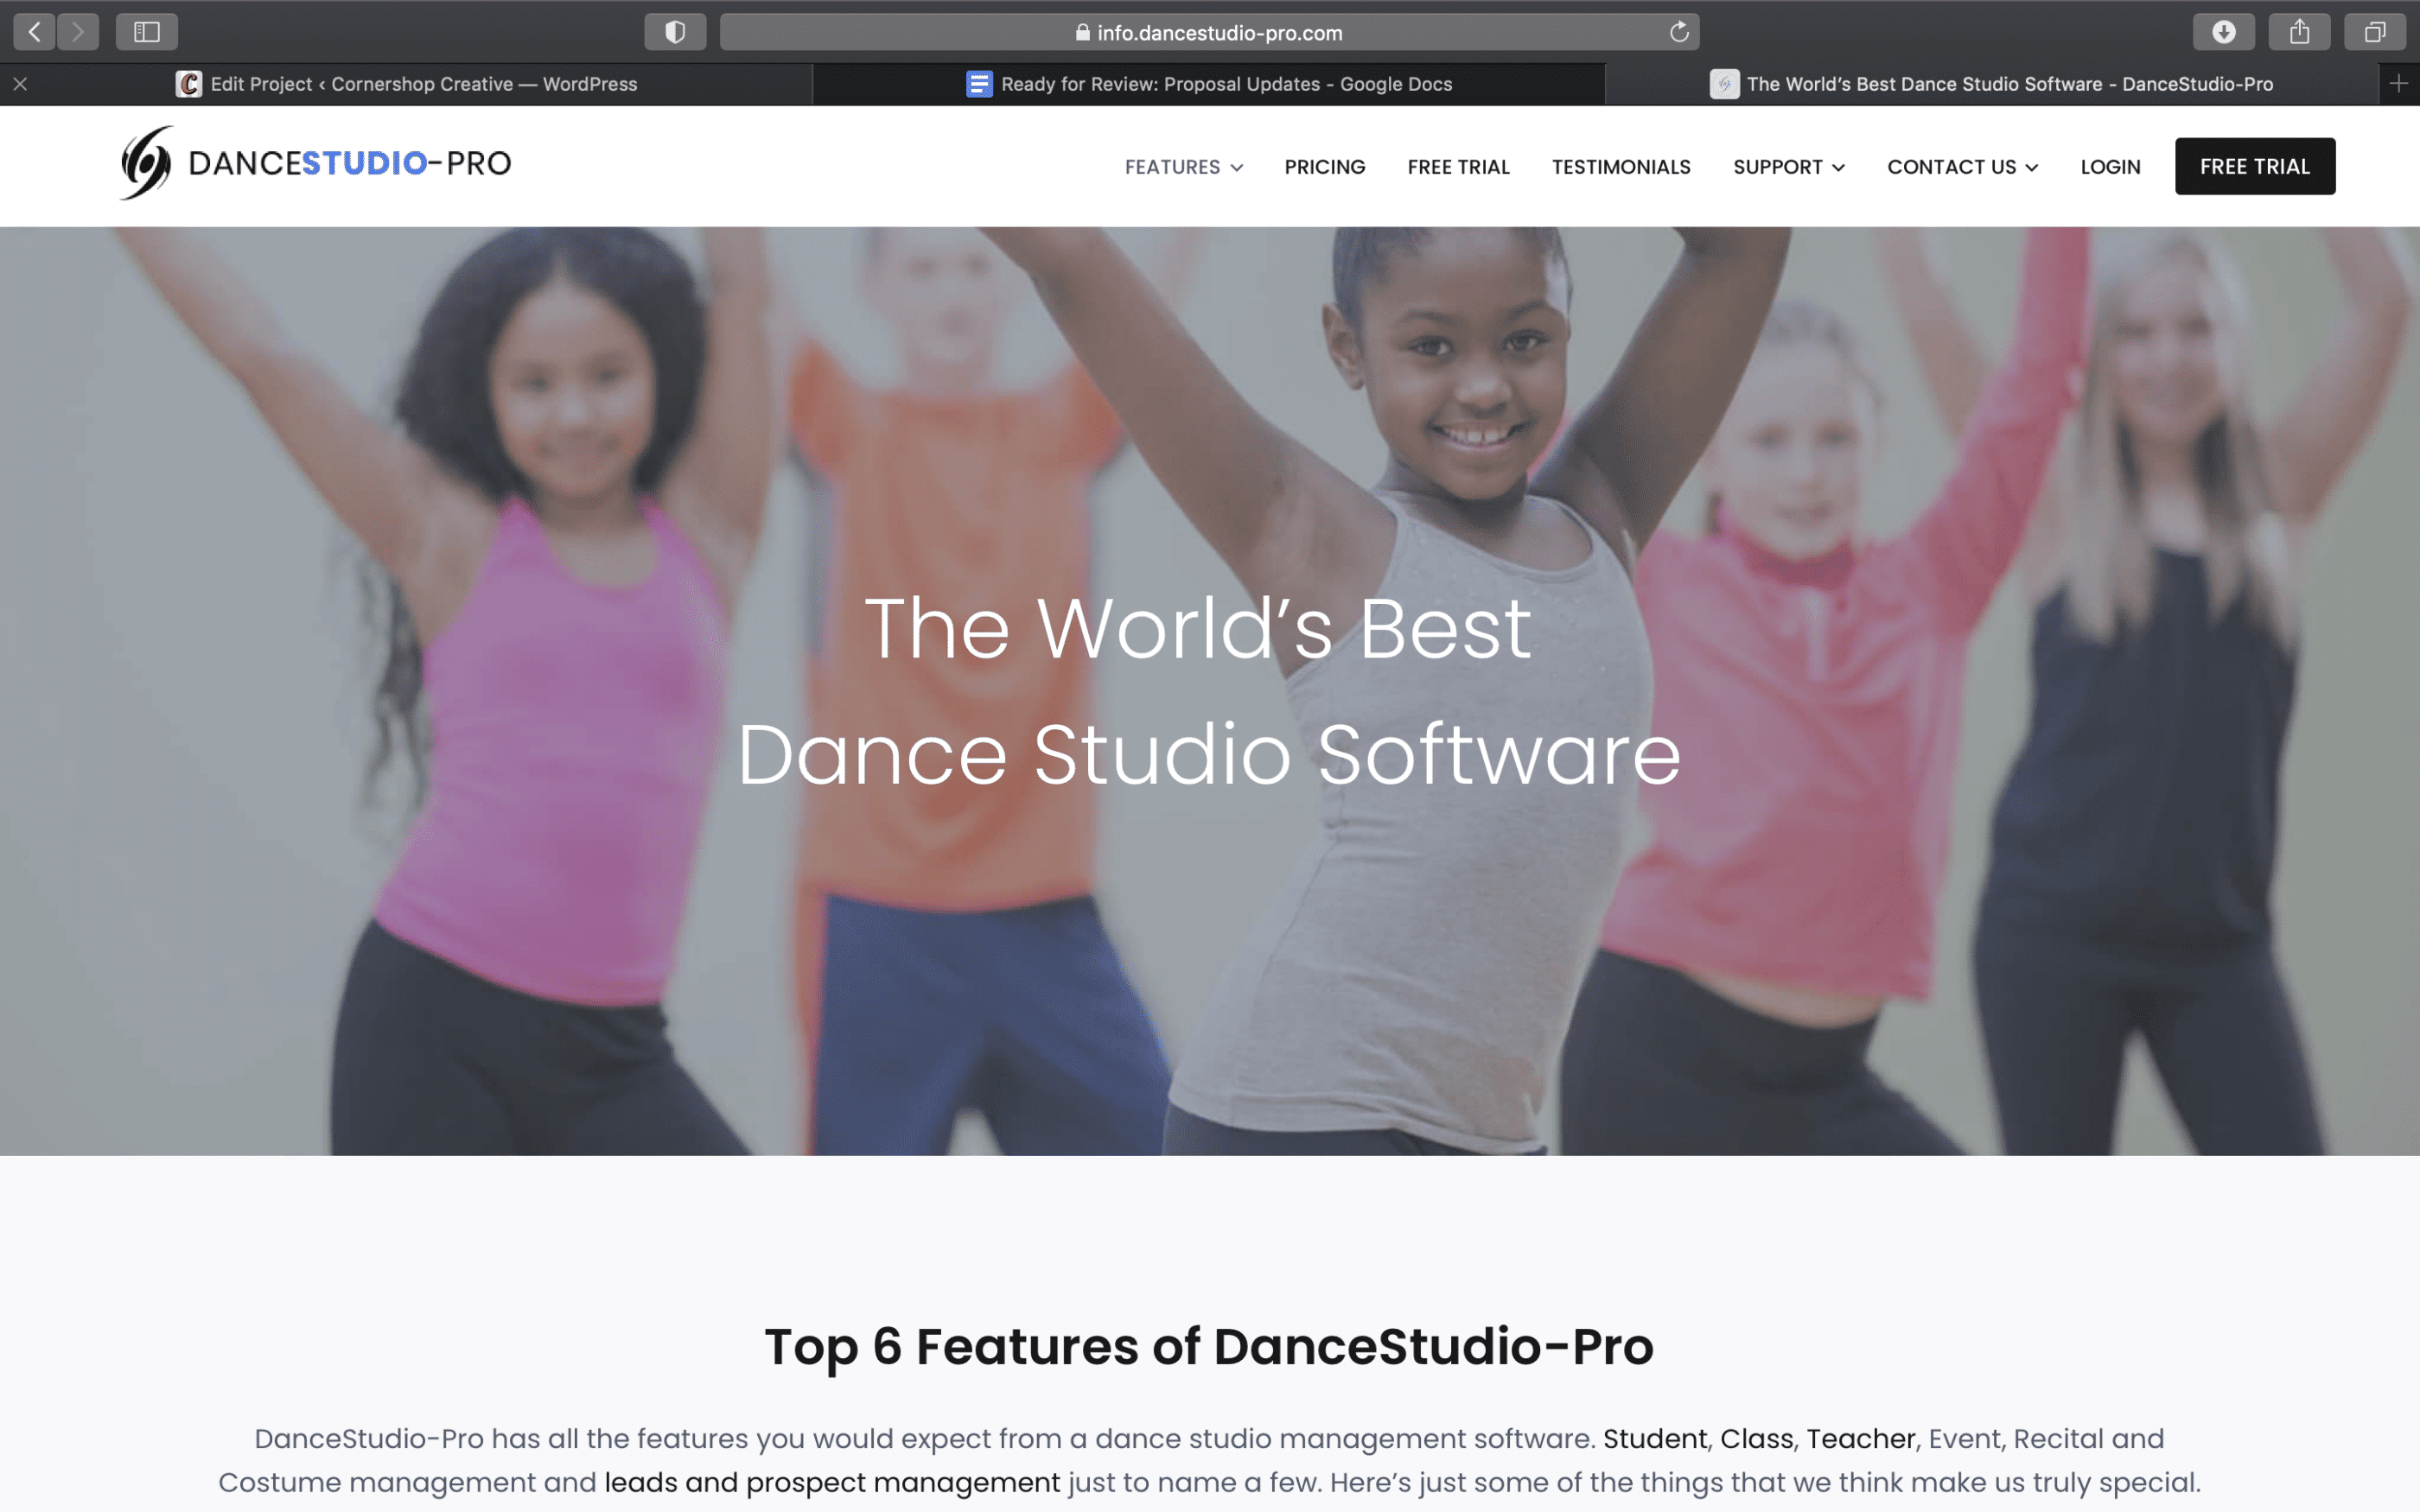 Screenshot of Software Company Celebrates Diverse Dancers With New WordPress Marketing Site